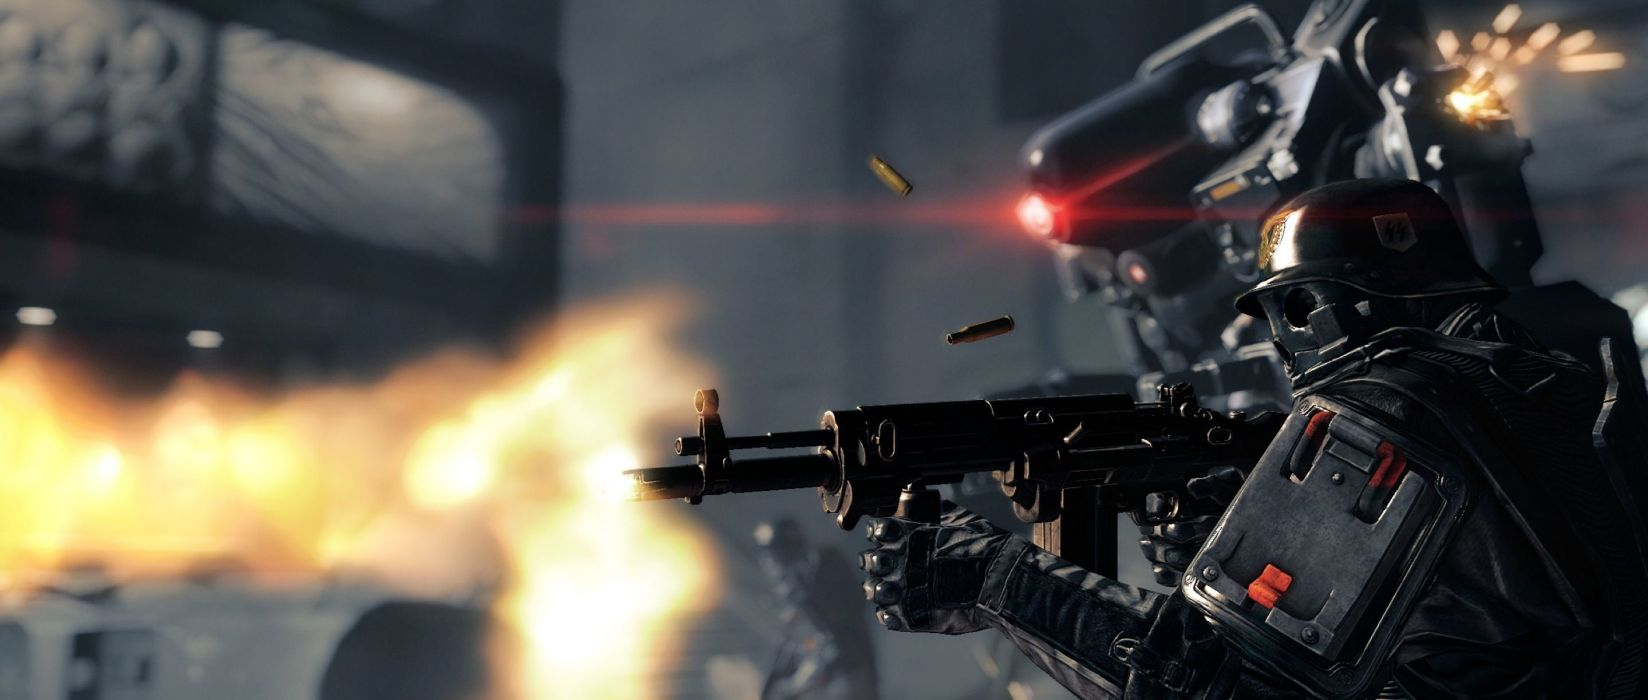 Wolfenstein warrior sci-fi armor mask battle weapon gun soldier     f wallpaper